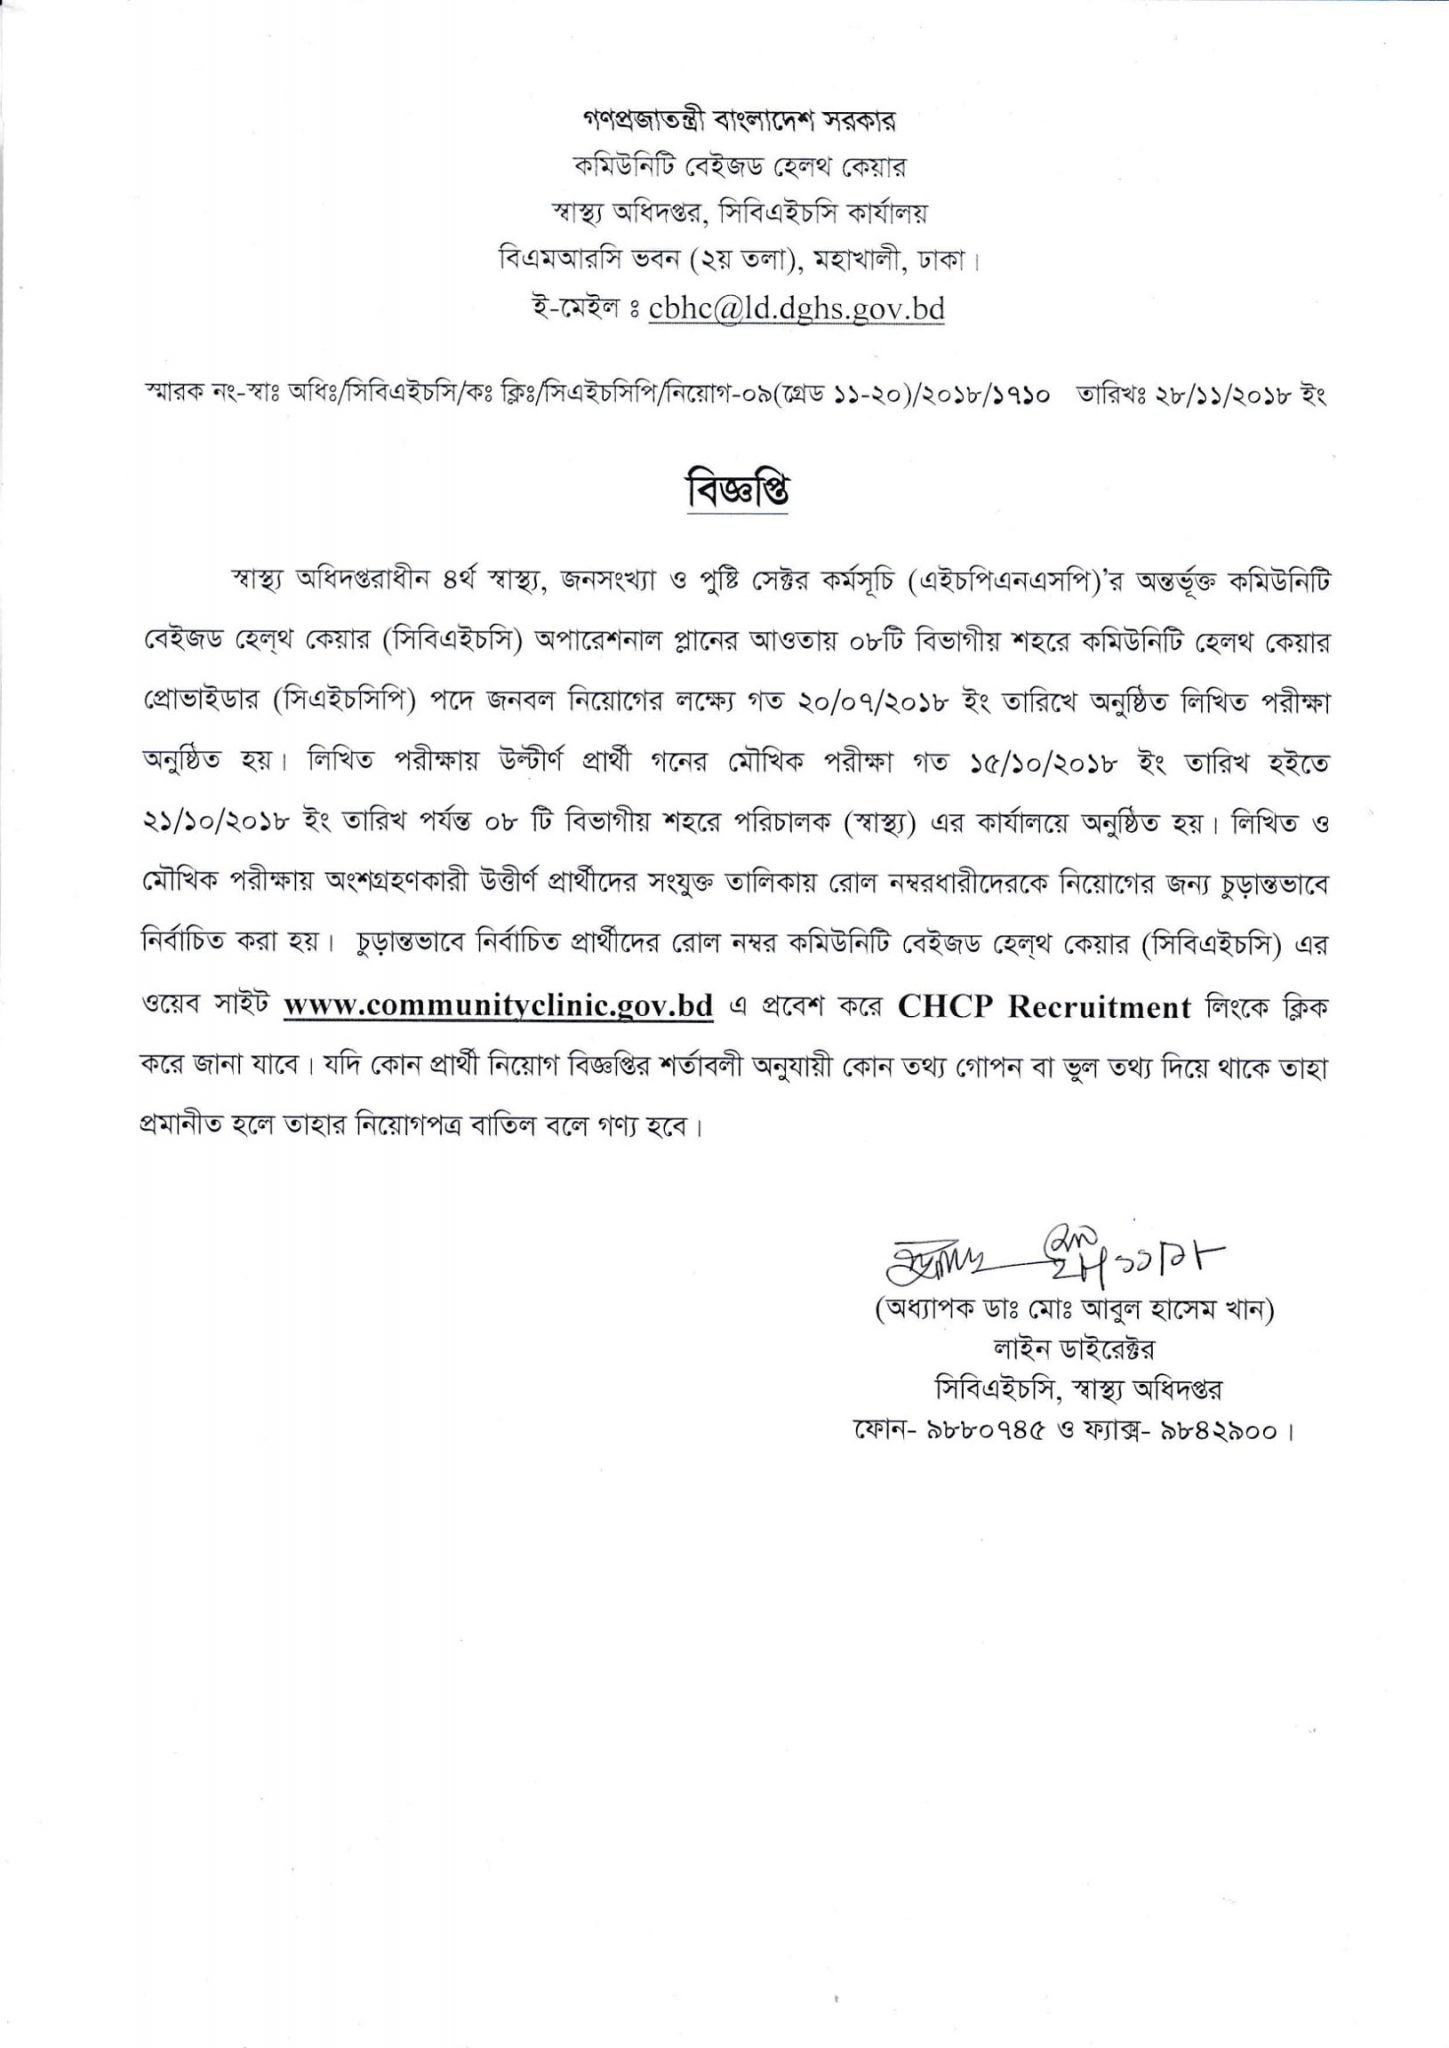 Community Clinic CHCP Exam Result